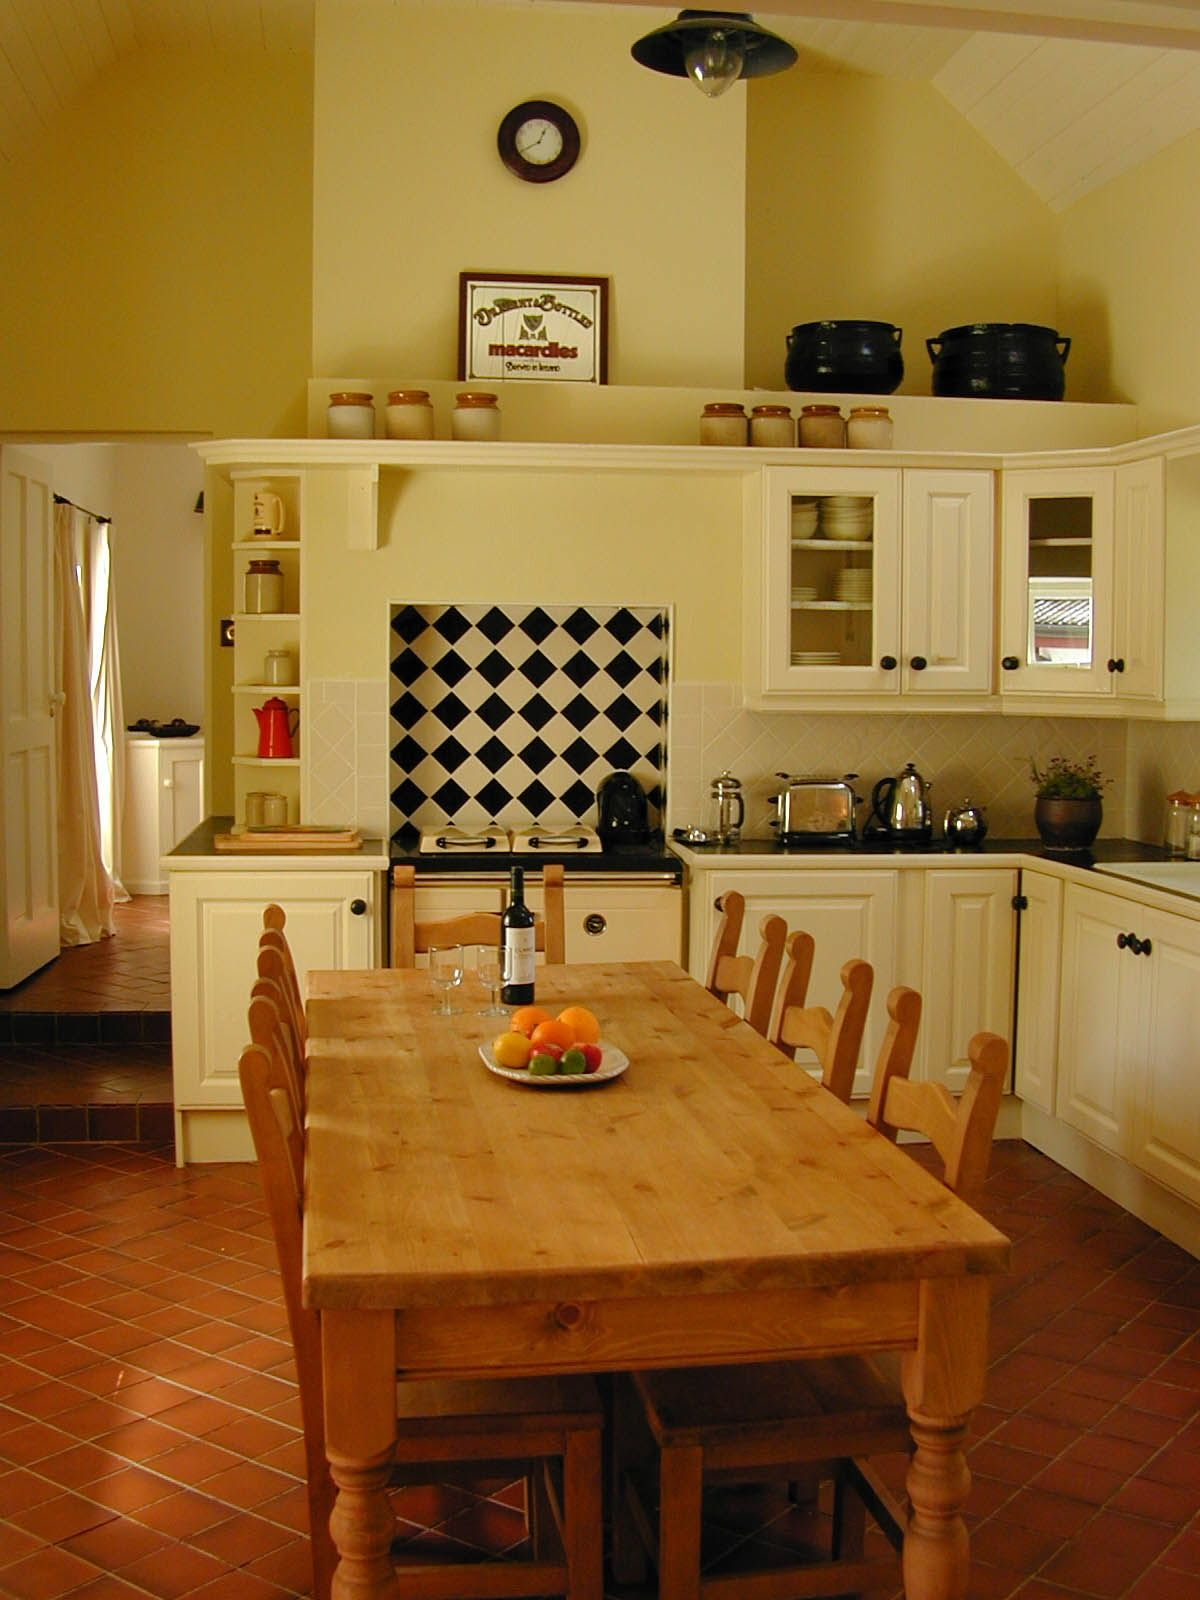 The traditional Irish kitchen at our Wicklow Cottage